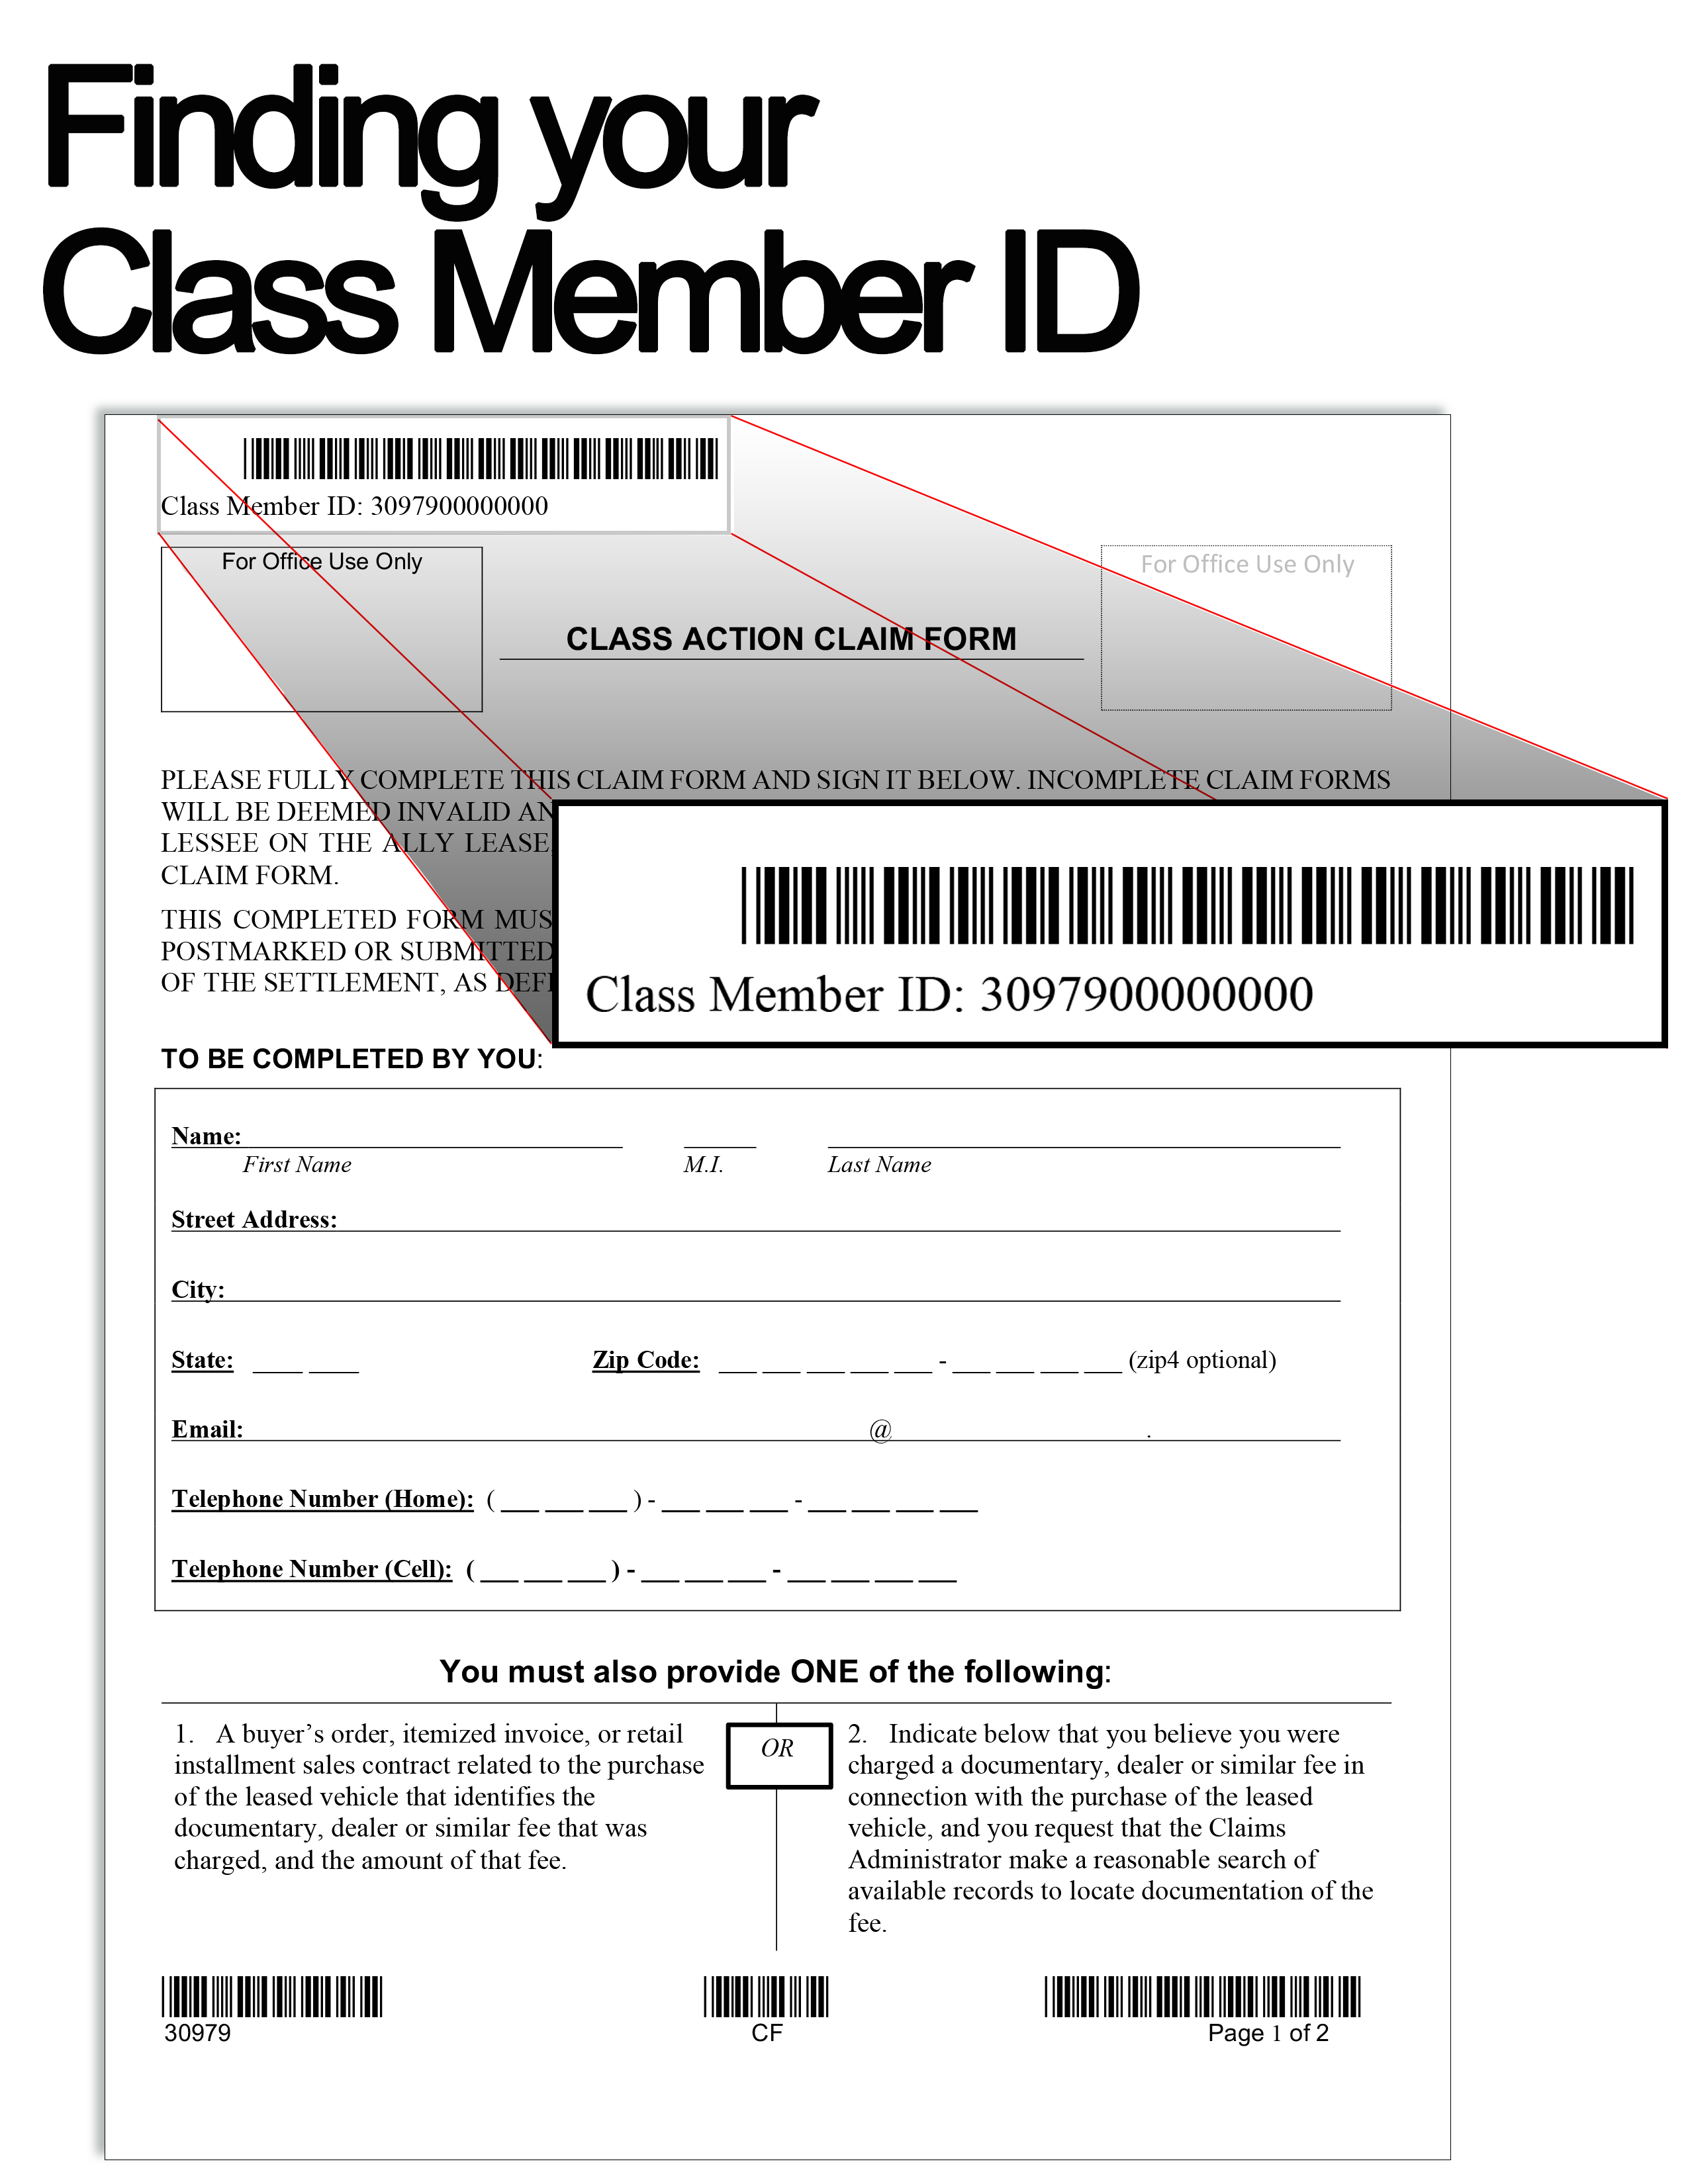 claim form sample image